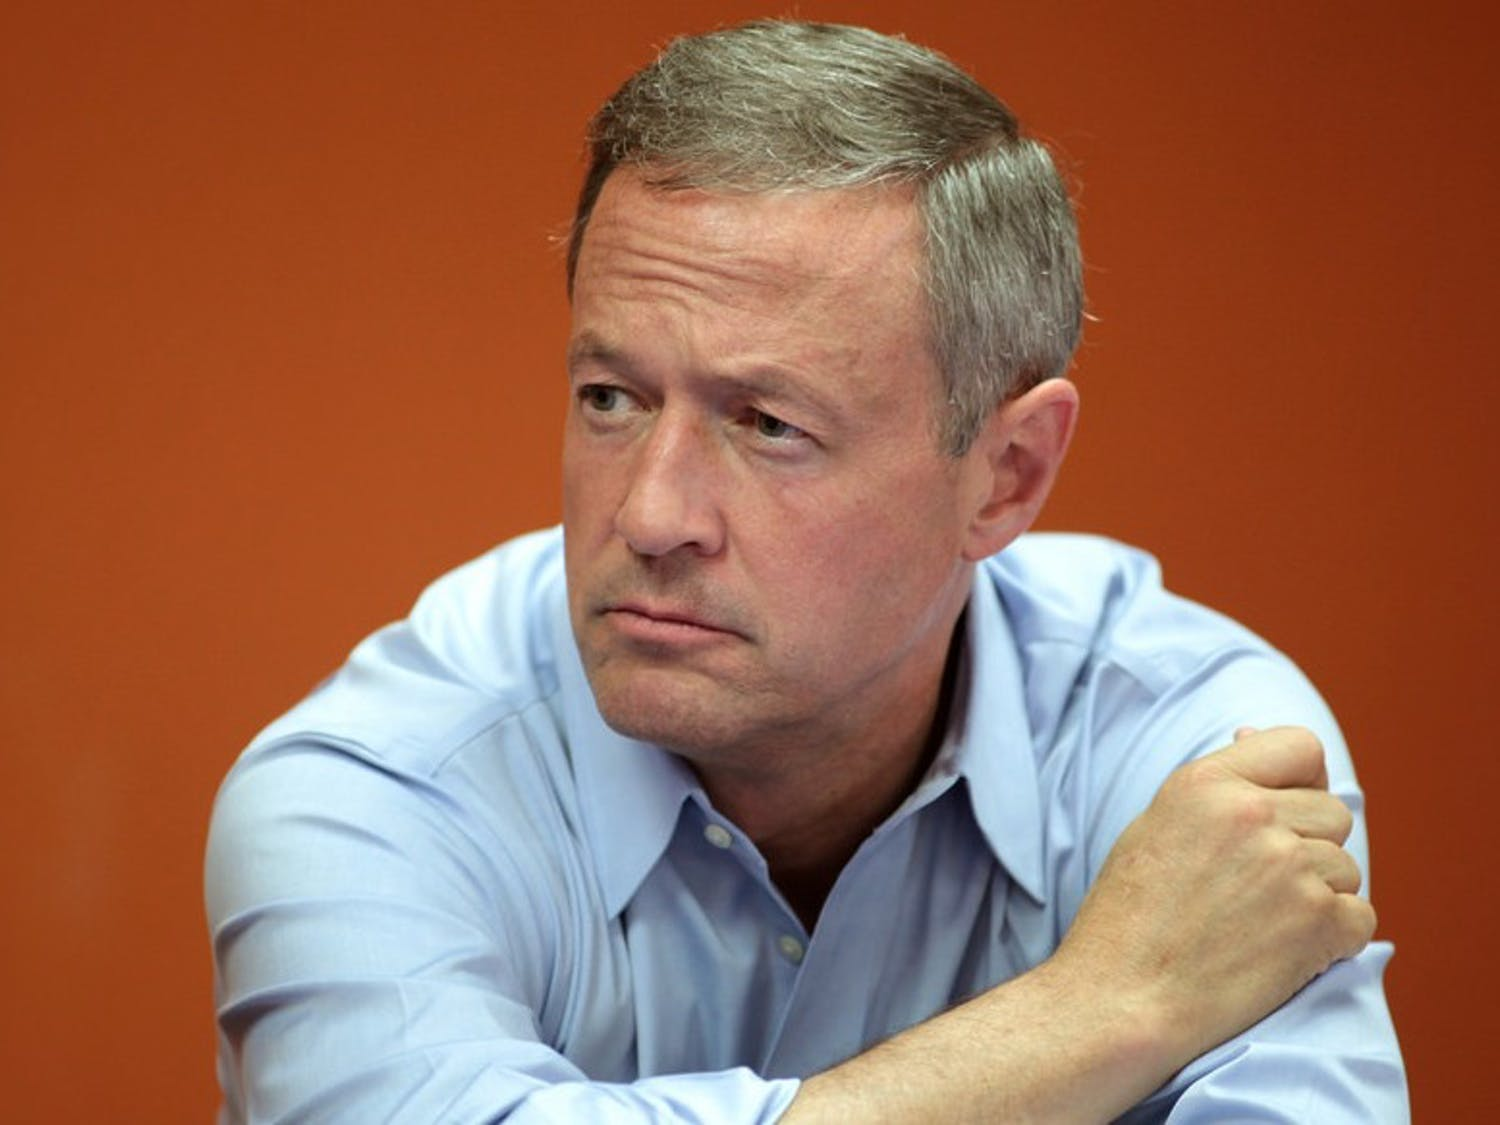 Former Maryland Gov. Martin O'Malley exited the presidential race after a loss in the Iowa caucus.